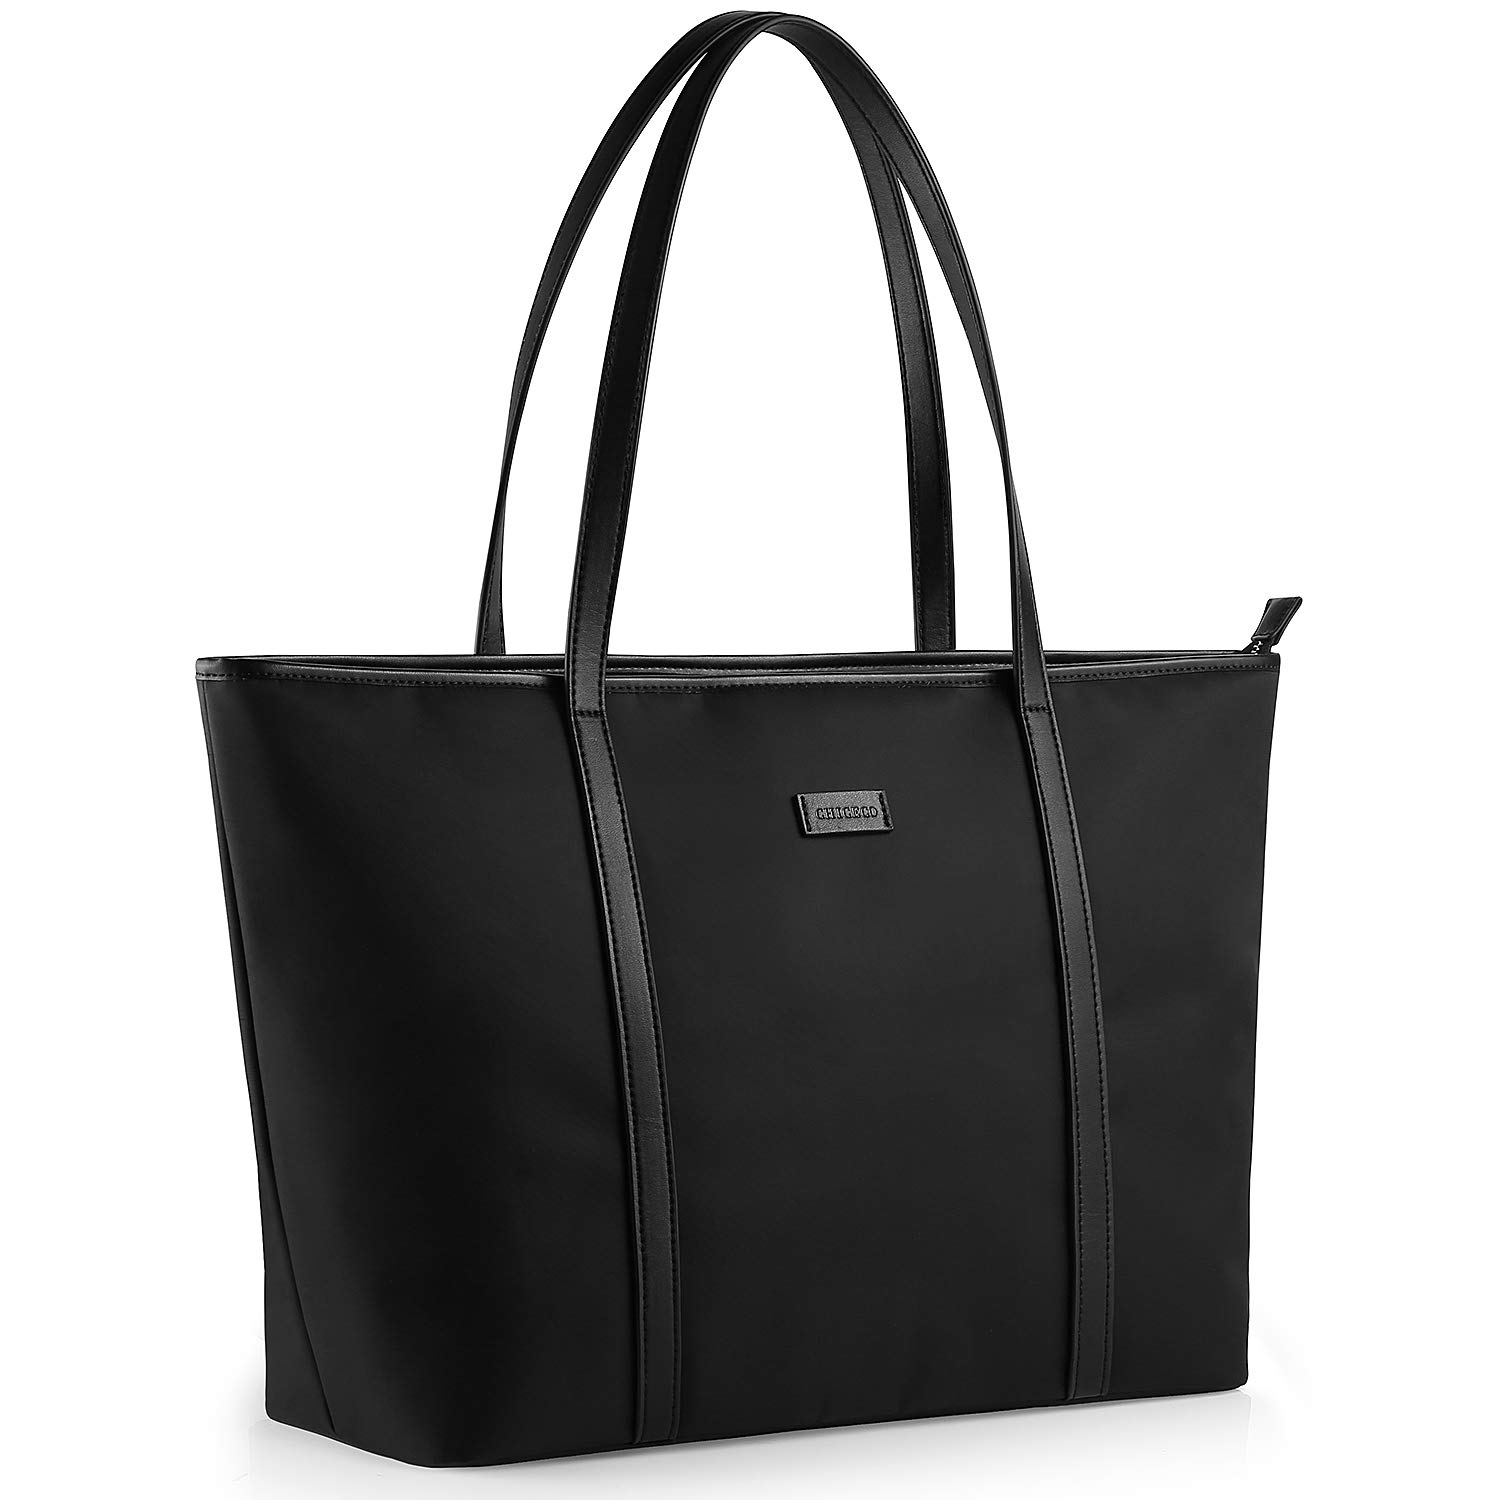 CHICECO Large Tote Bag for School Travel Work - Black, Lightweight Version by CHICECO